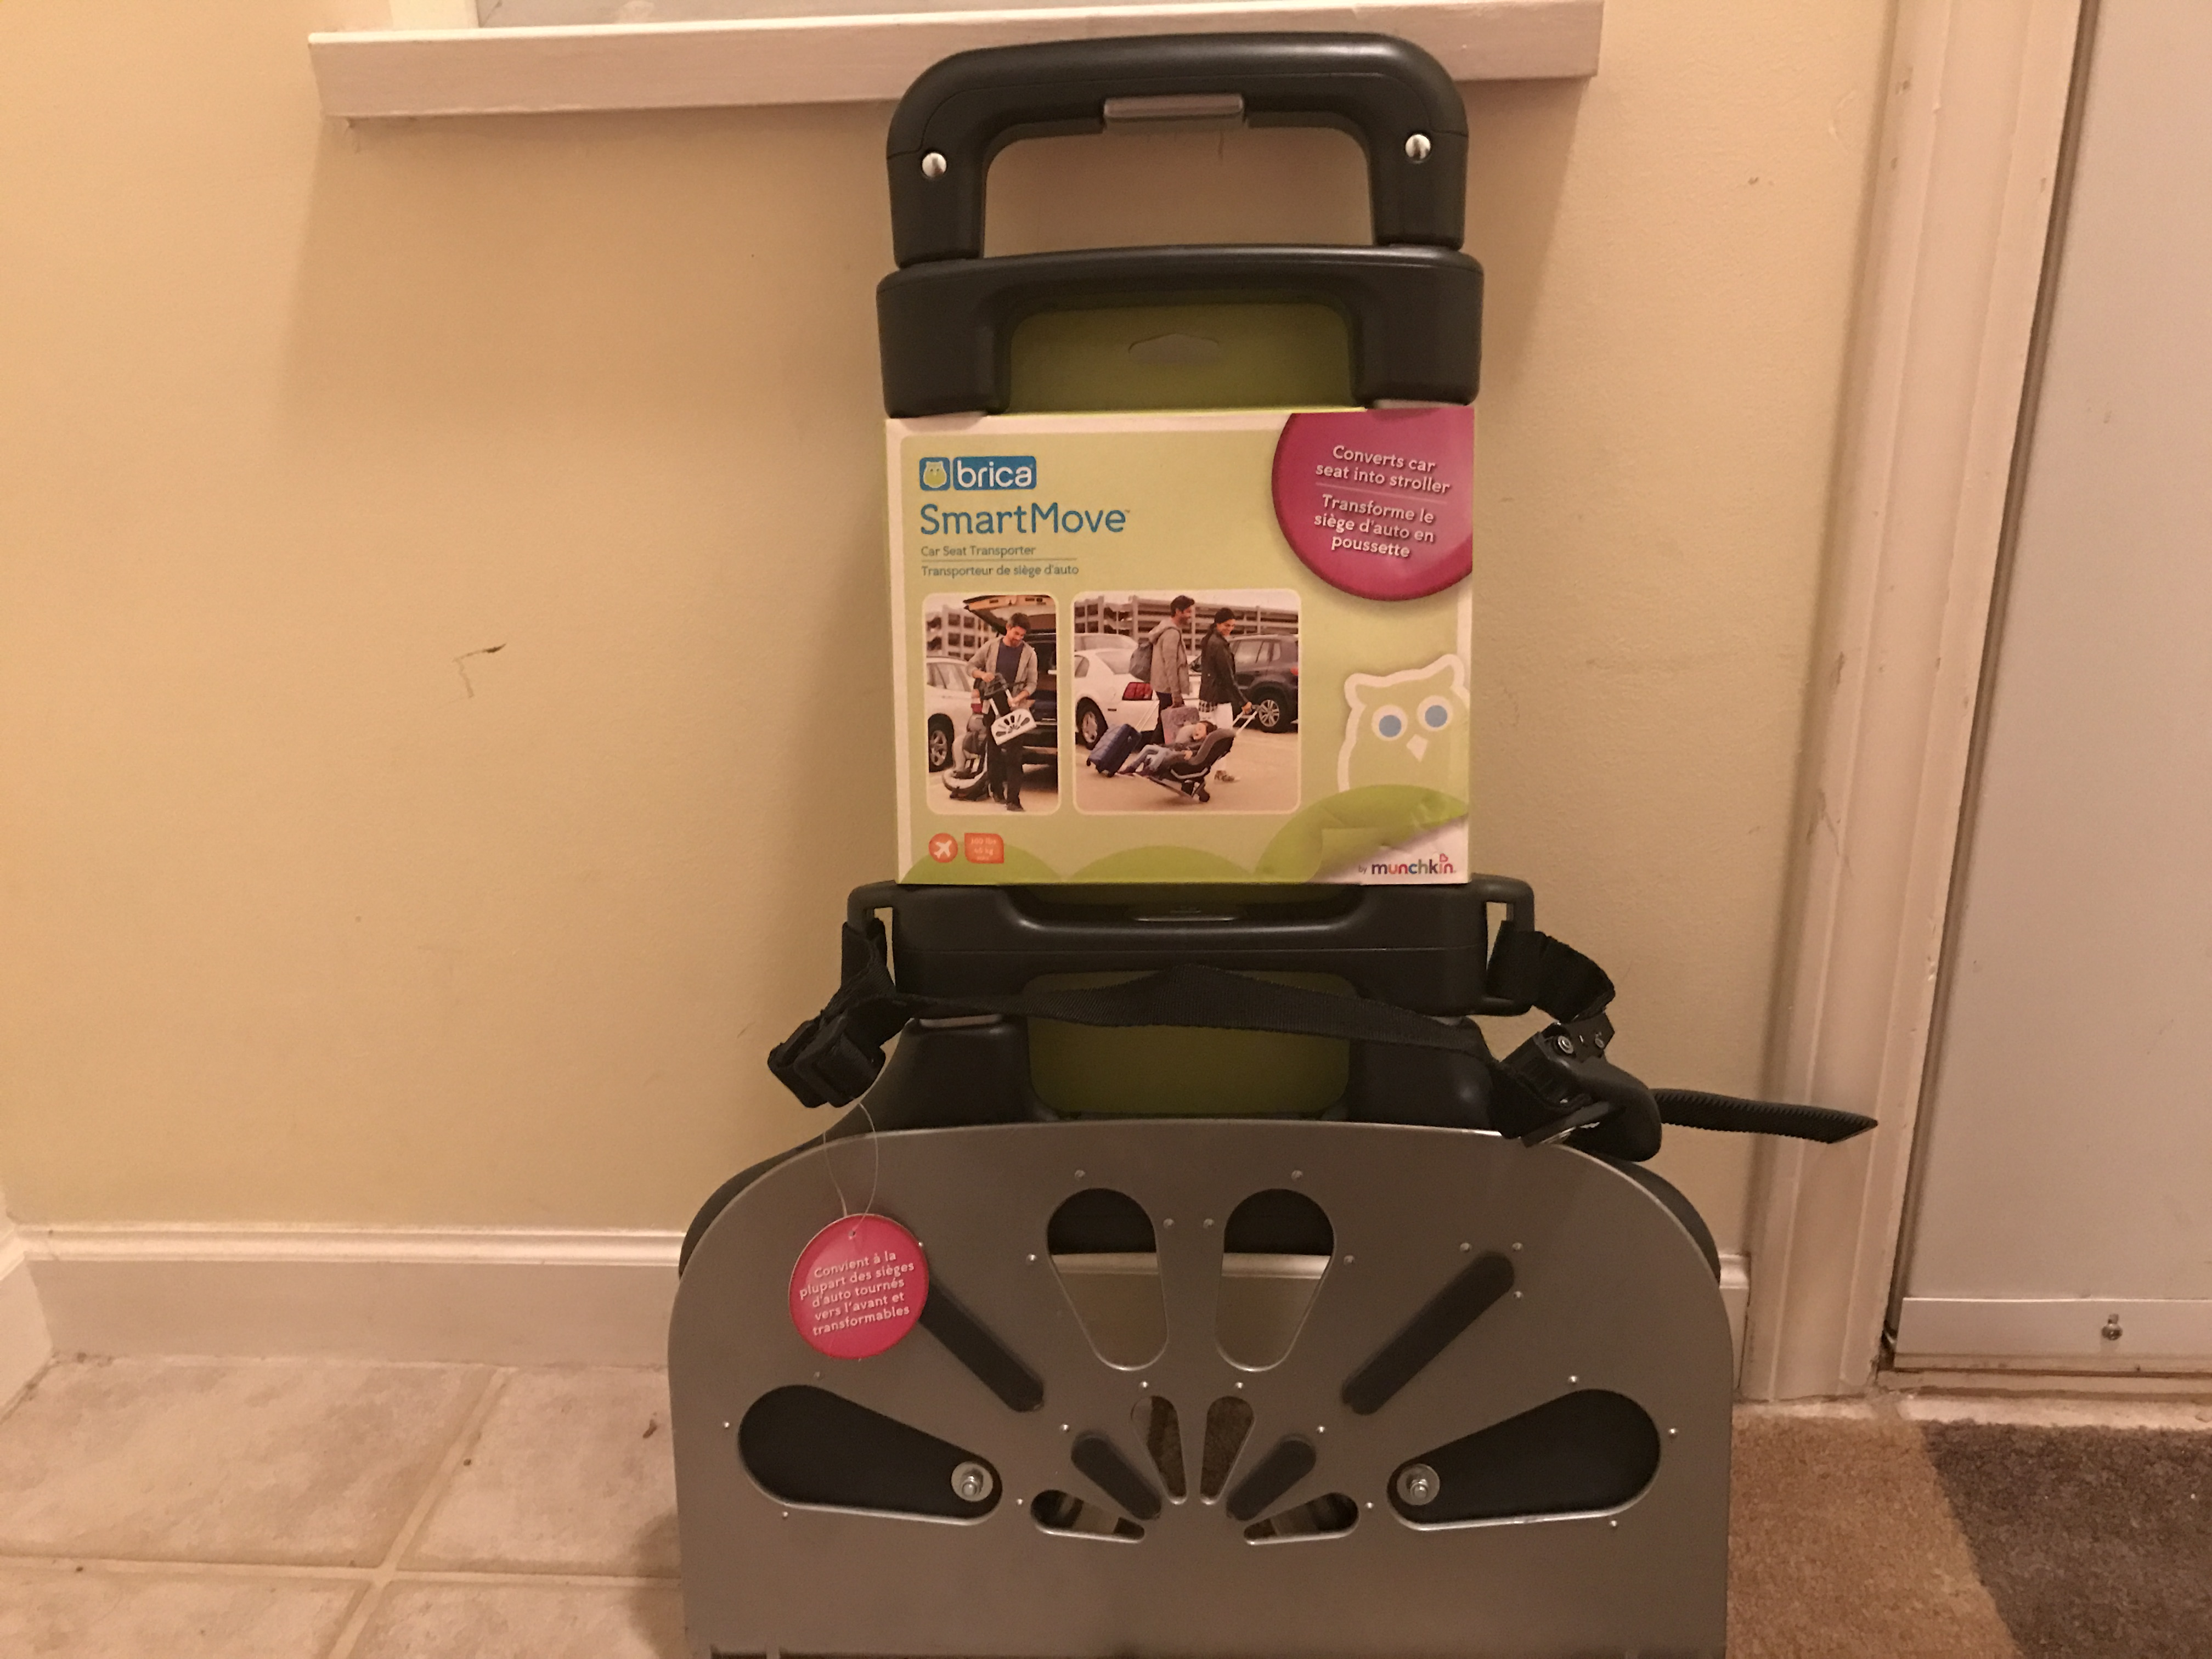 Brica Smartmove Boxed Is A Car Seat Transporter